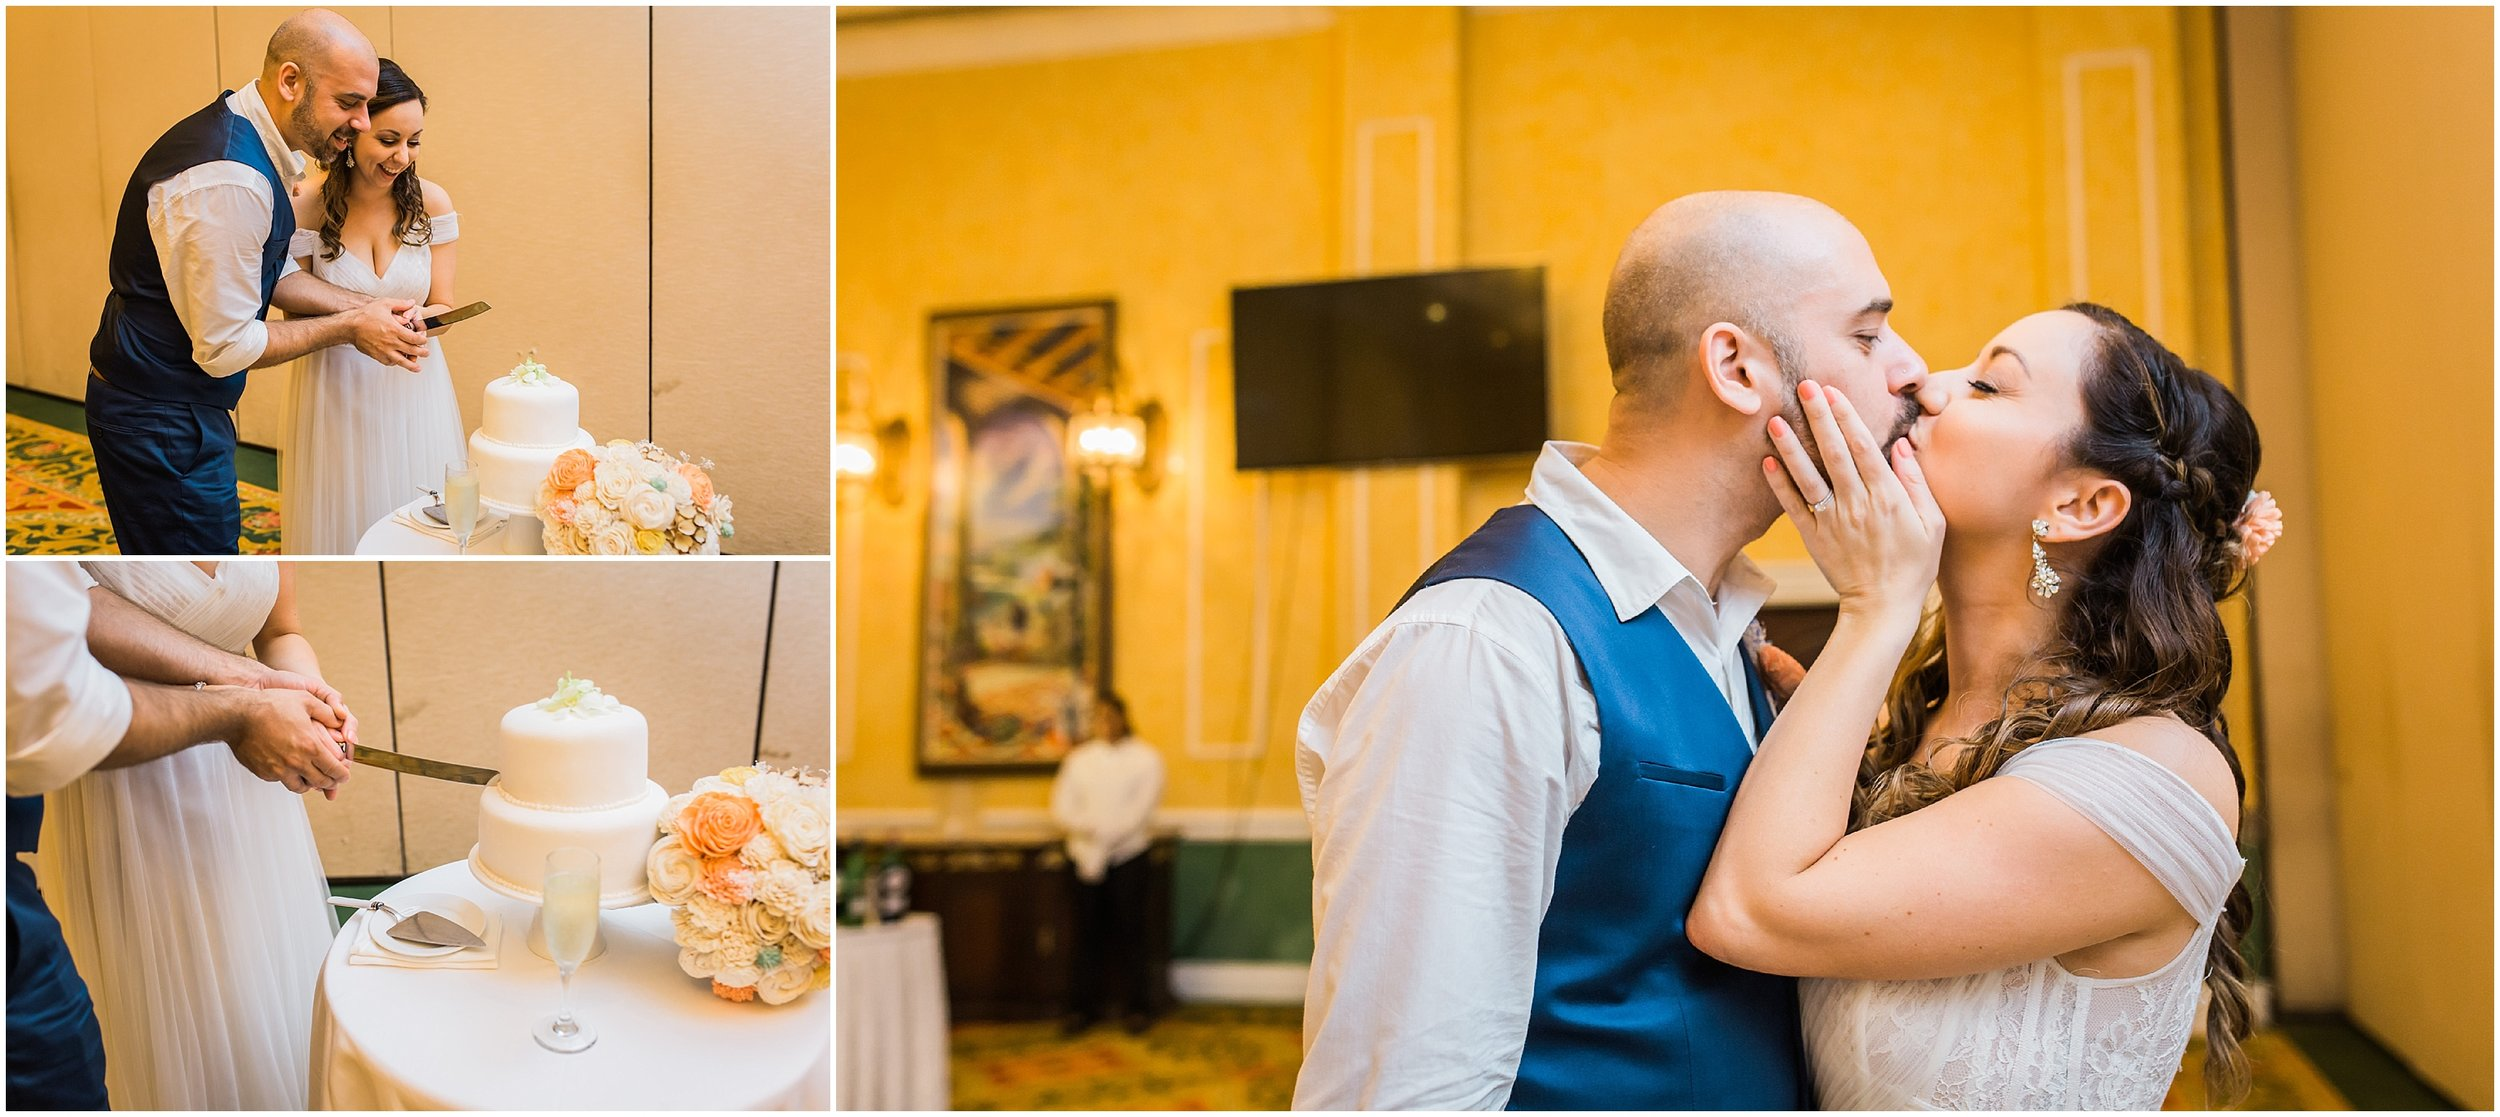 Nina+Vic Wedding Highlights-158.jpg